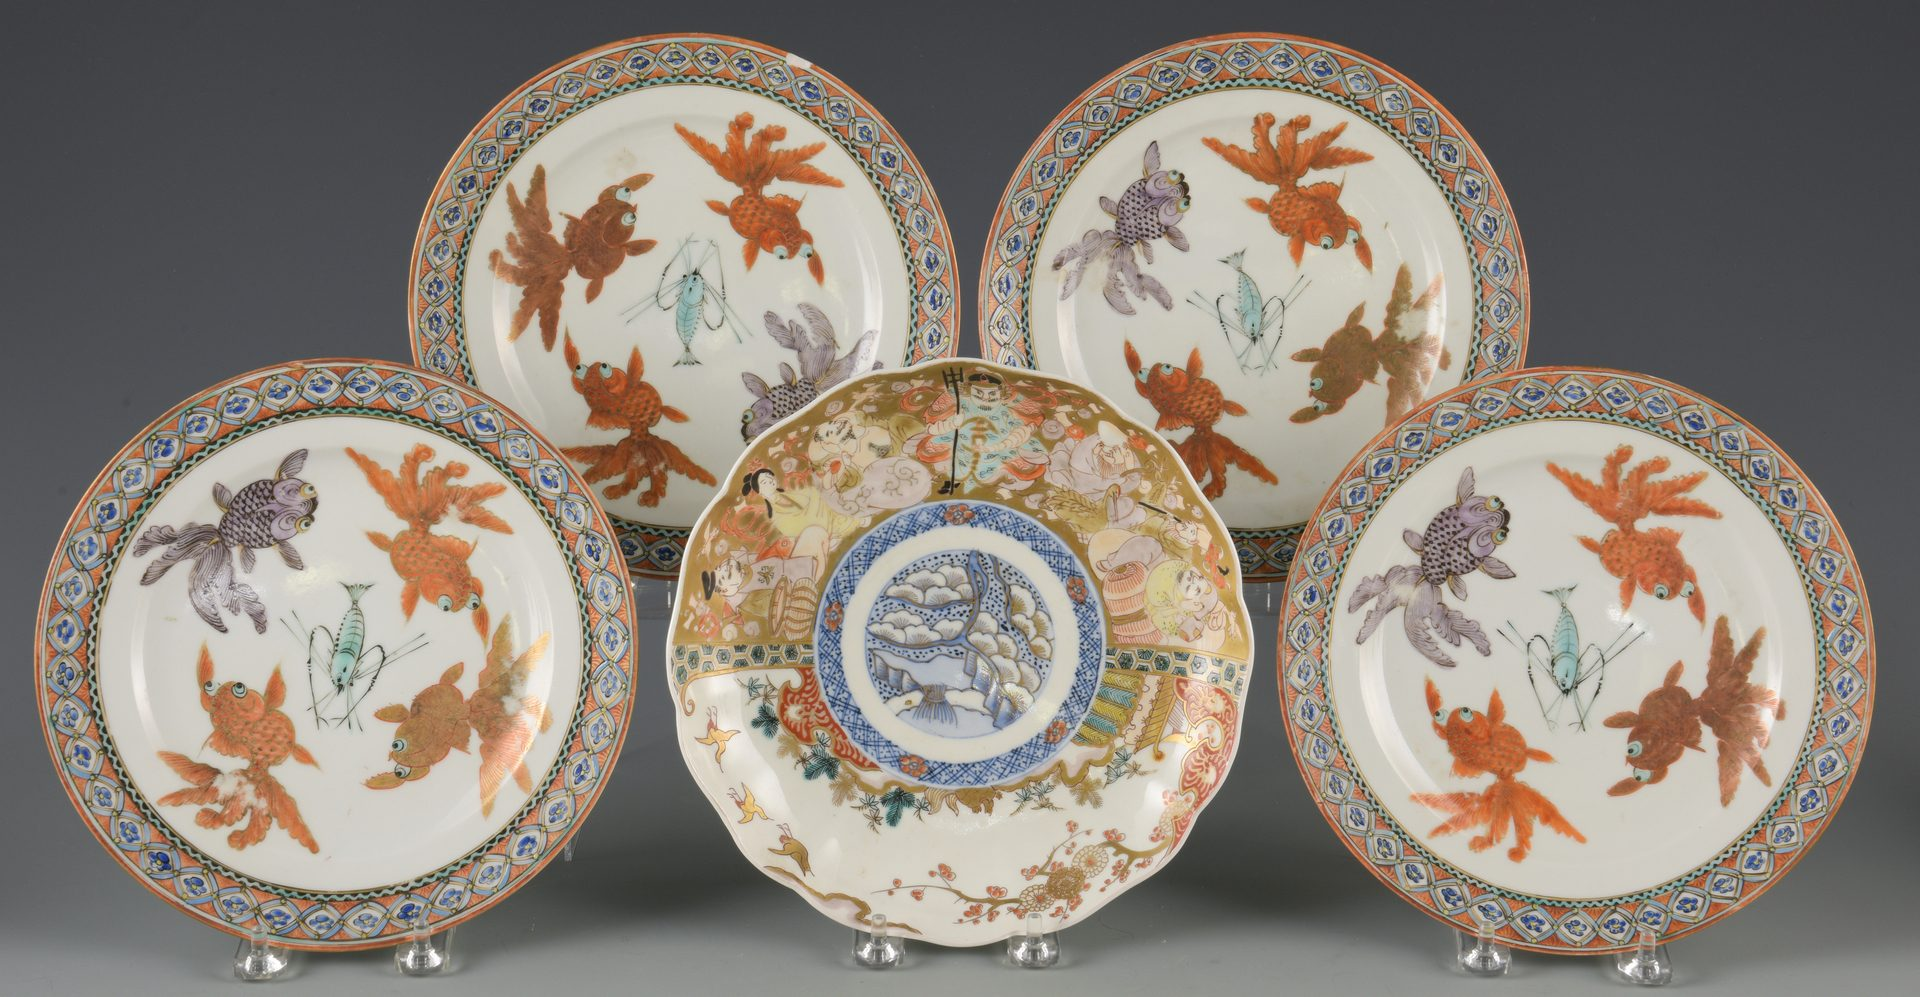 Lot 593: Japanese and Chinese Porcelain, 18 items